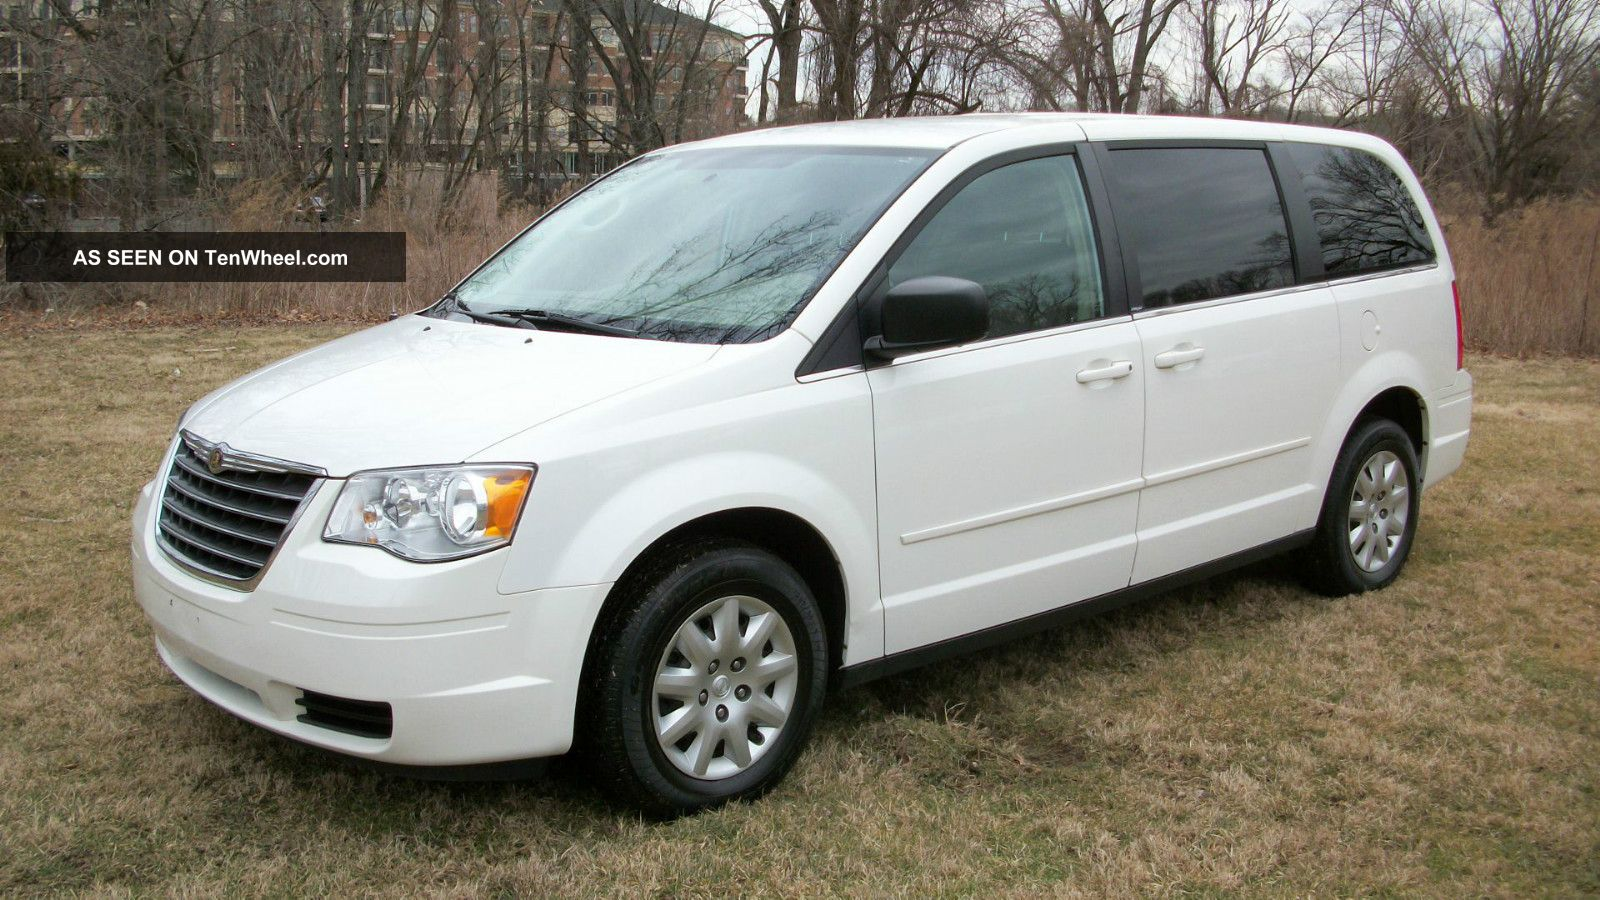 2010 Chrysler Town & Country Lx Mini Van 7 Passenger Stow & Go Seating Runs 100% Town & Country photo